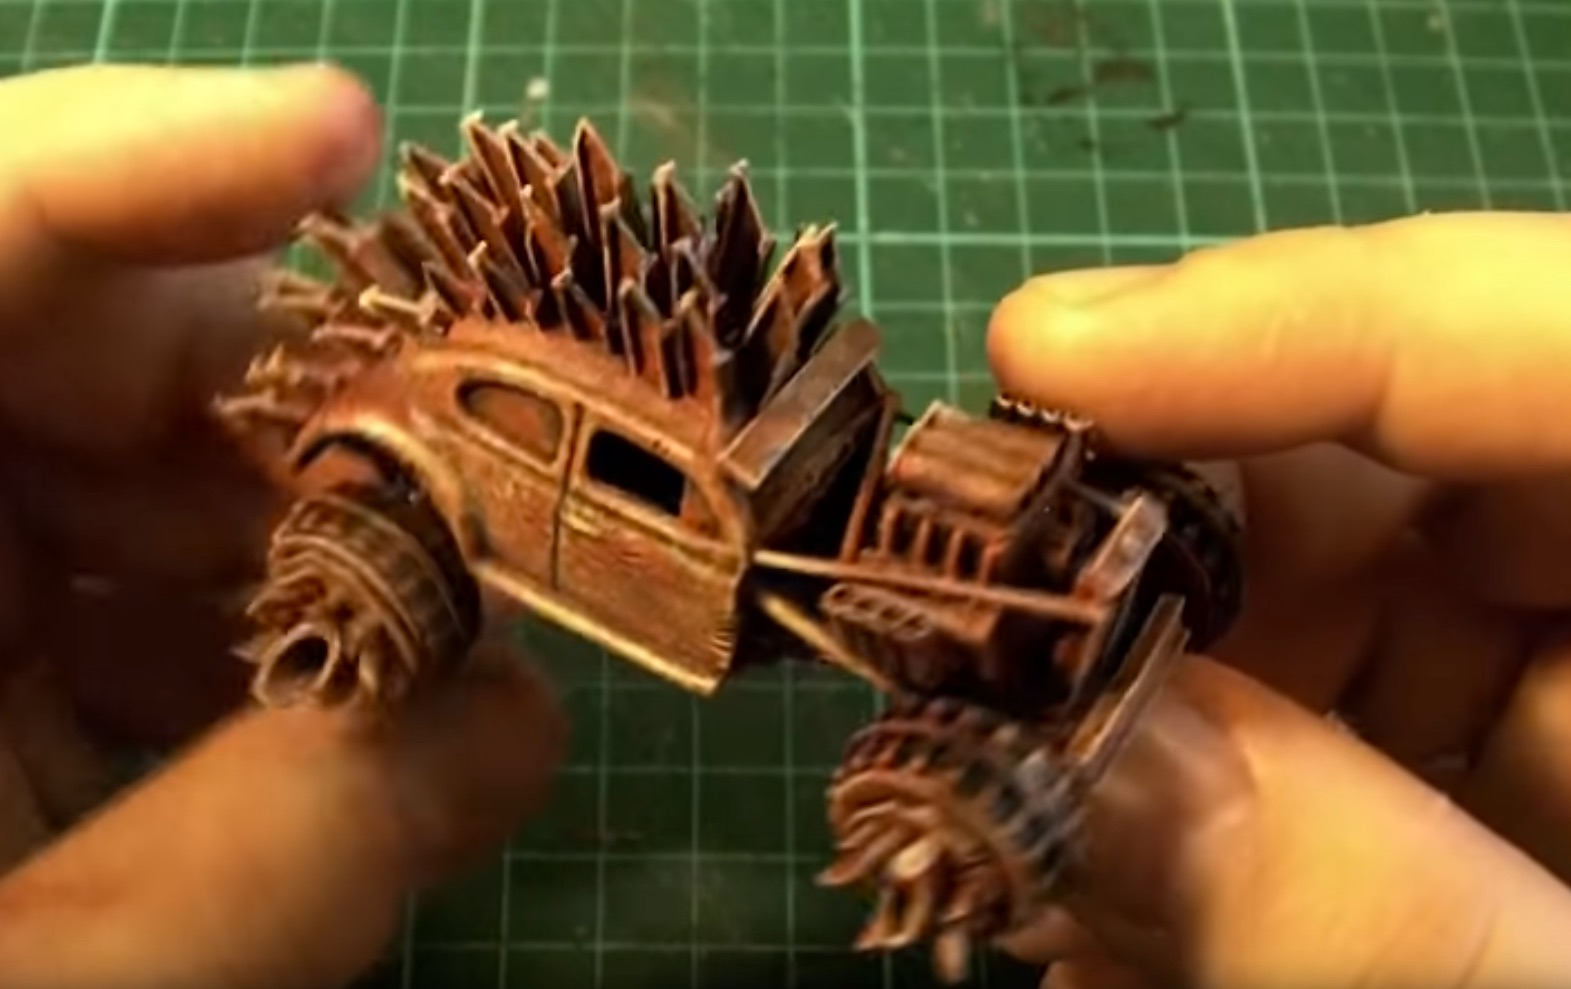 More on Modeling Cars from the Wasteland